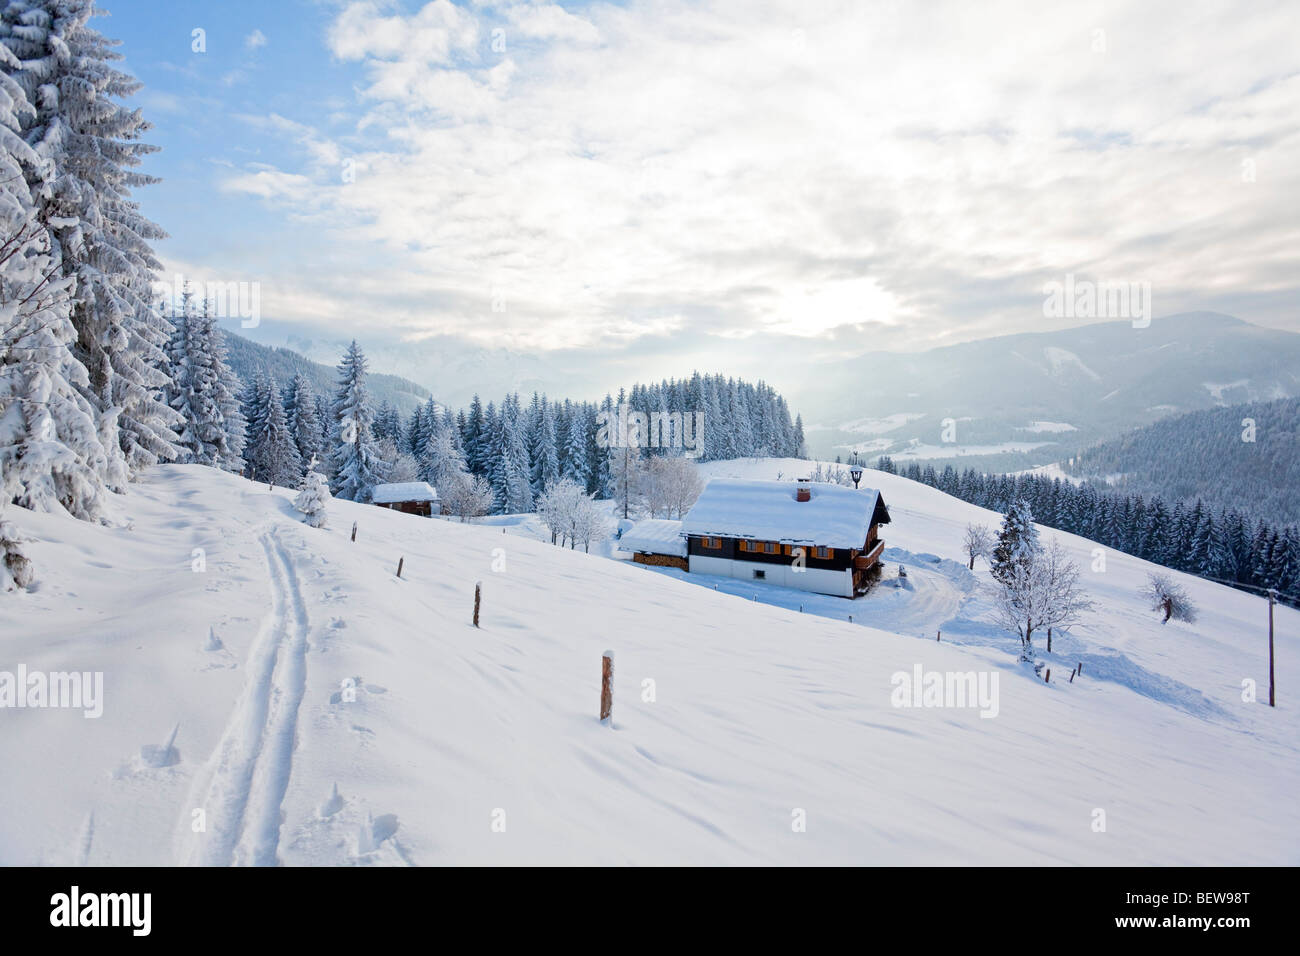 Alpine cabin on a snow-covered clearing, Annaberg-Lungoetz, Salzburger Land, Austria Stock Photo